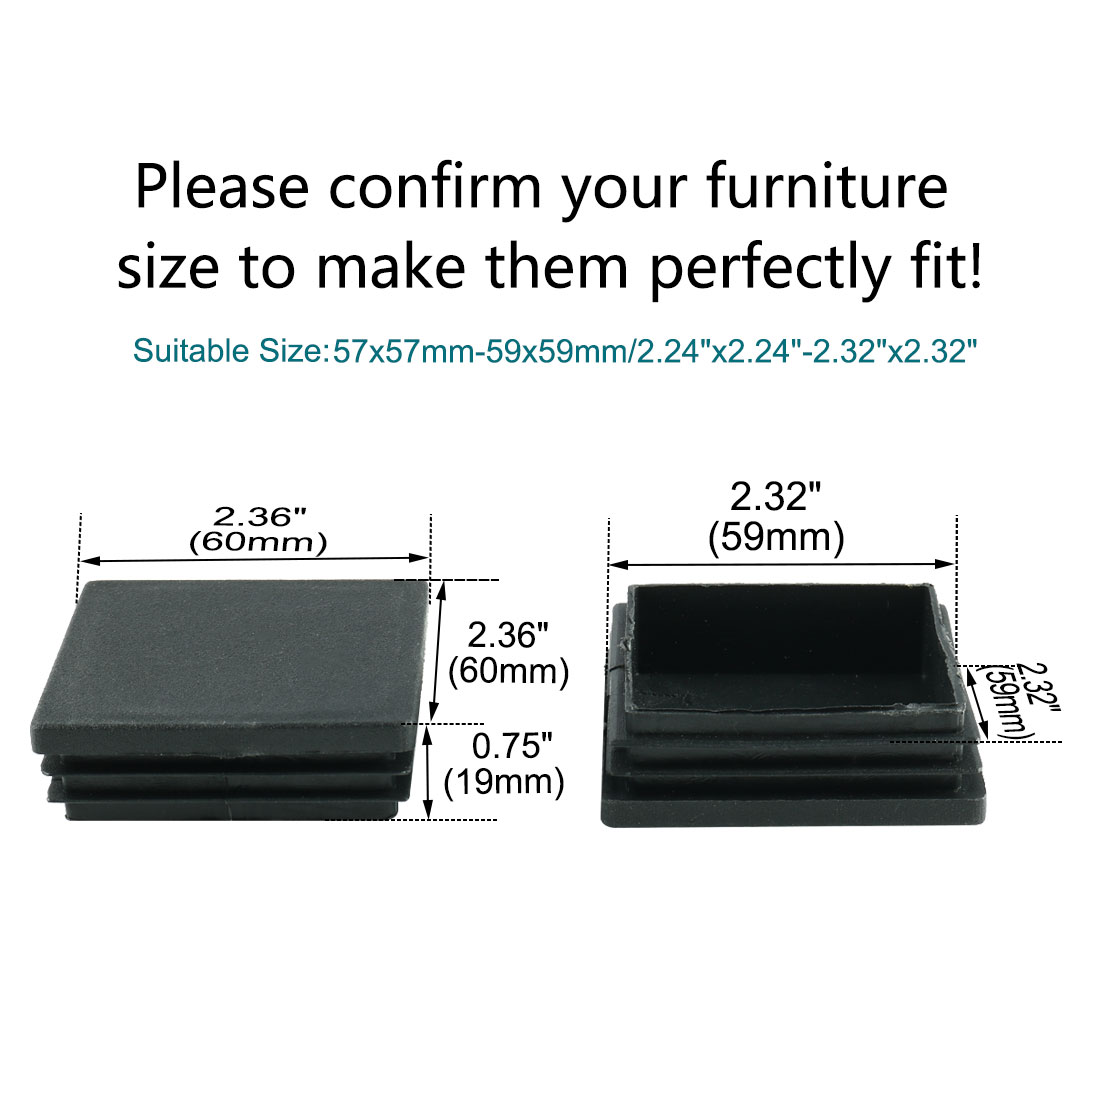 """Square Tube Insert Furniture Floor Protector for 2.24"""" to 2.32"""" Inner Size 21pcs - image 6 of 7"""